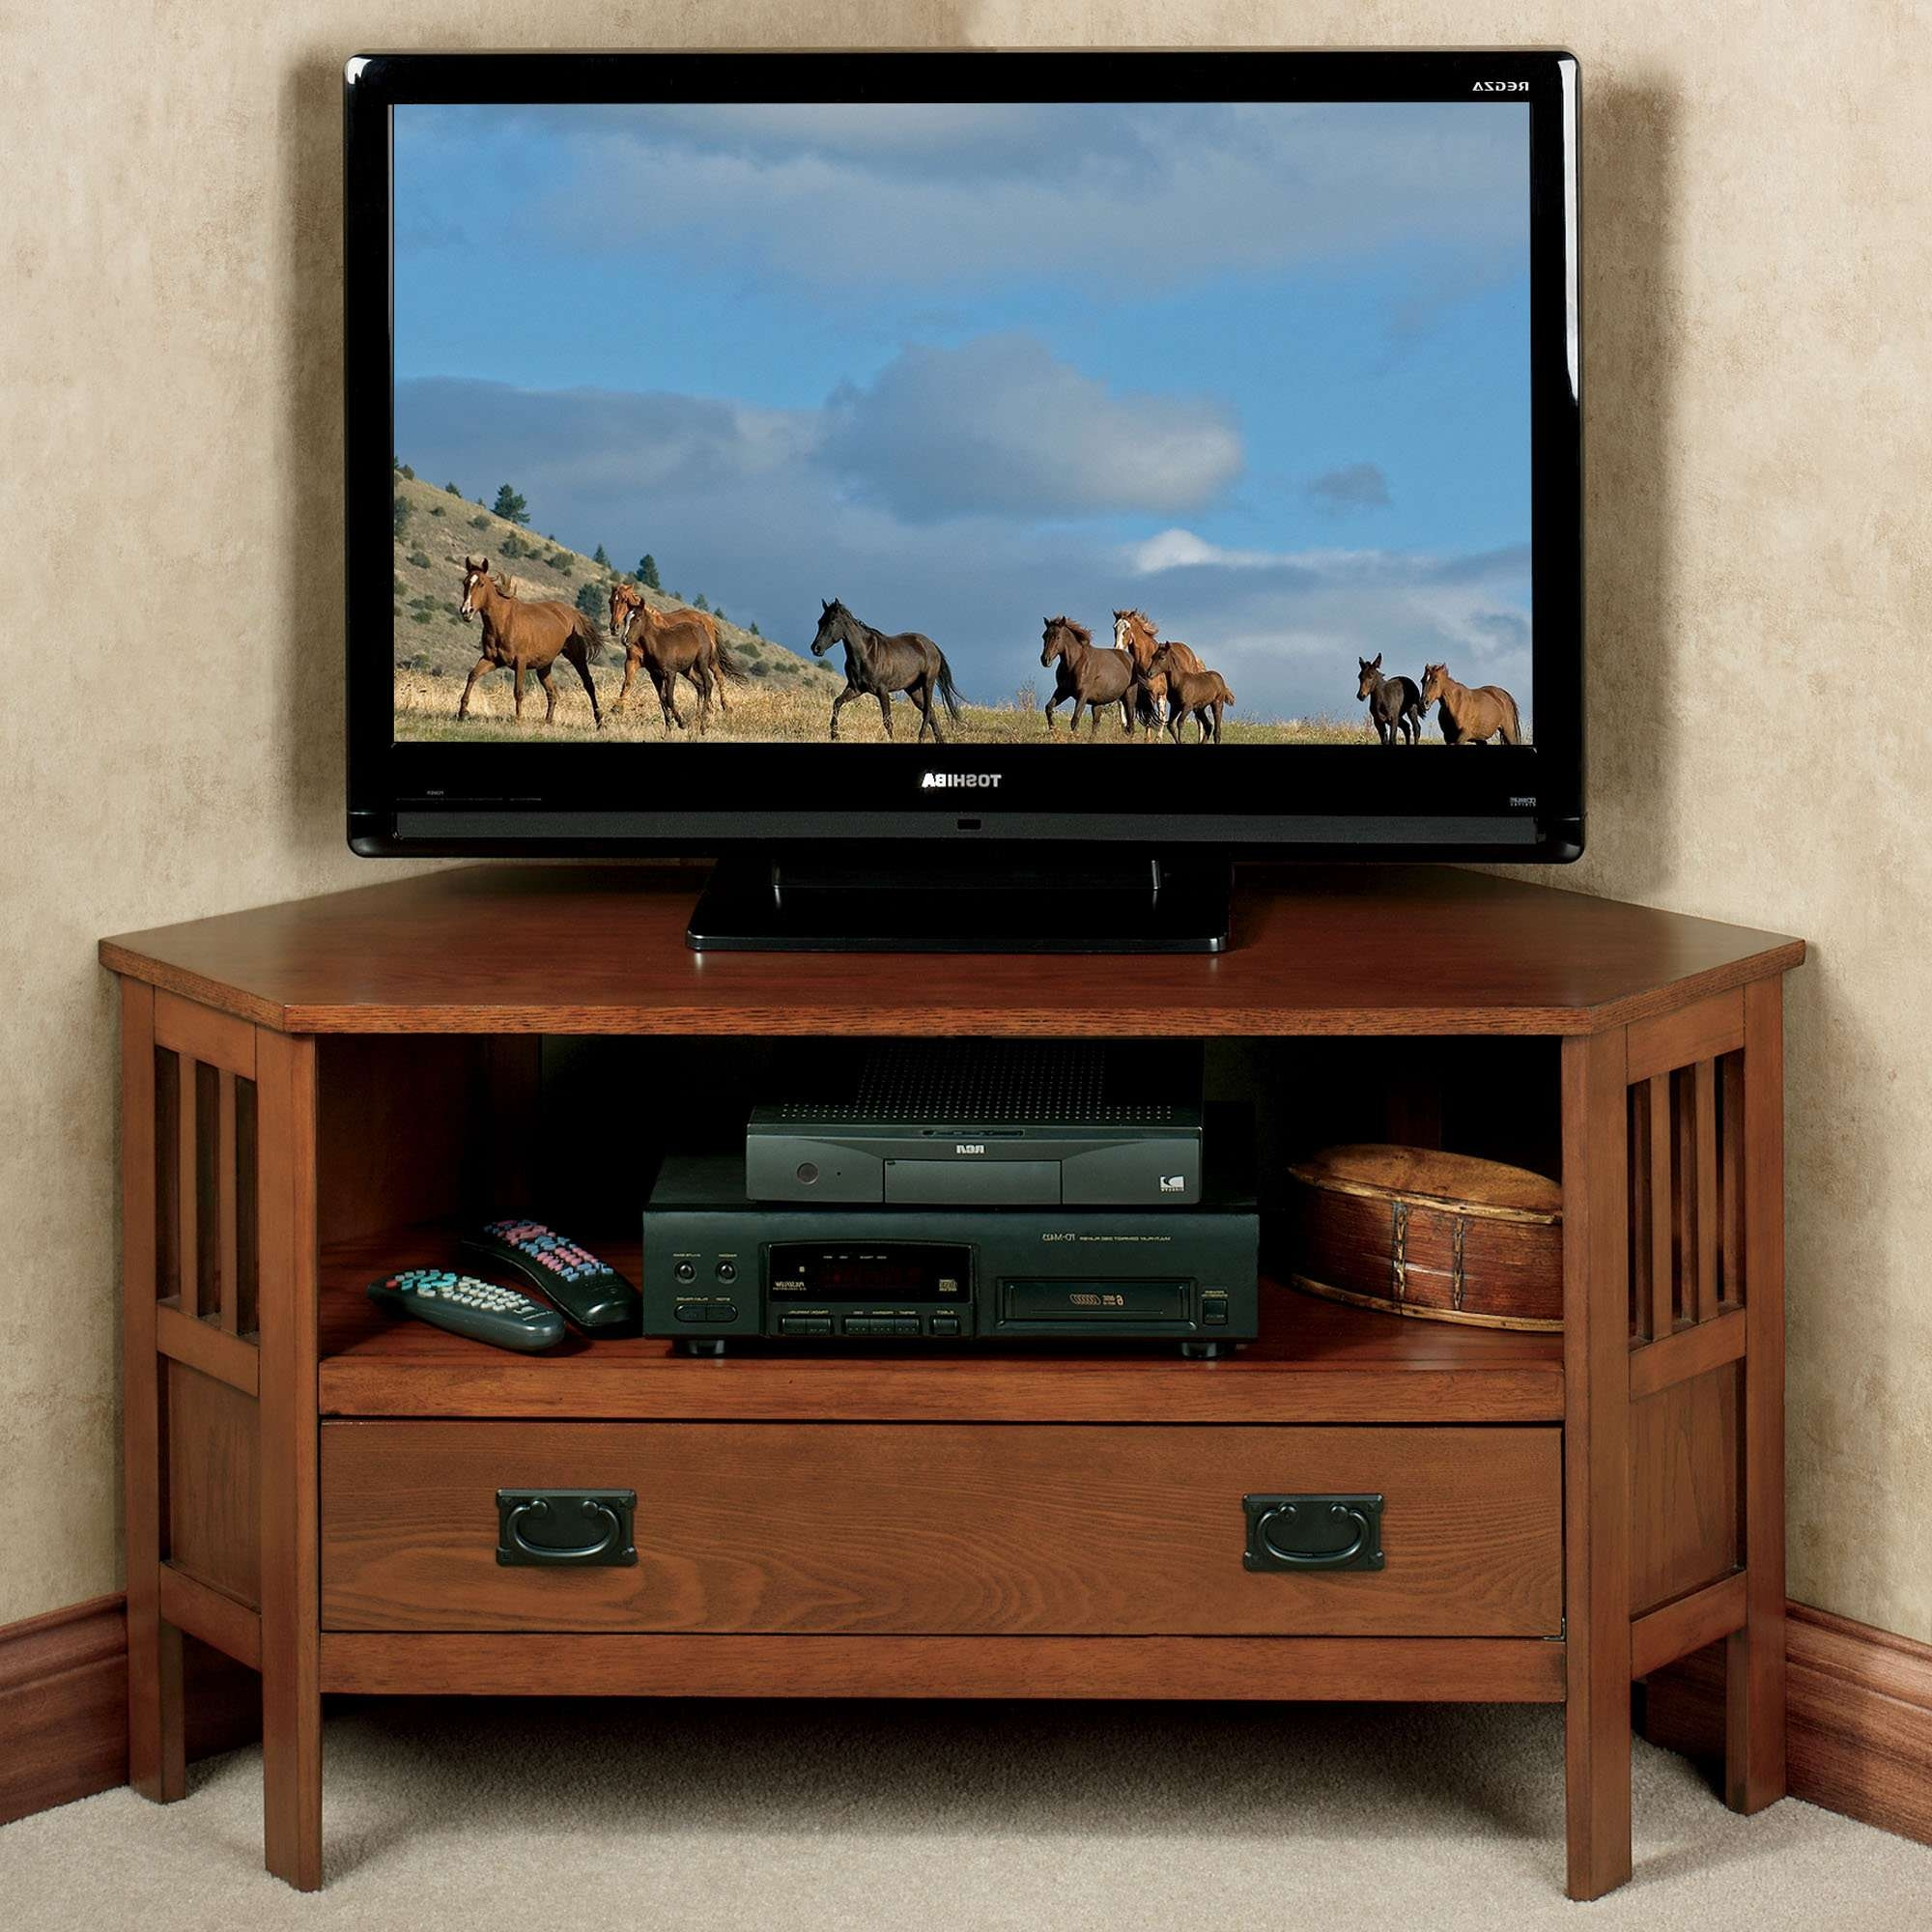 Home Decor: Alluring Wood Tv Stands For Flat Screens With Corner With Regard To Oak Tv Stands For Flat Screen (View 4 of 15)